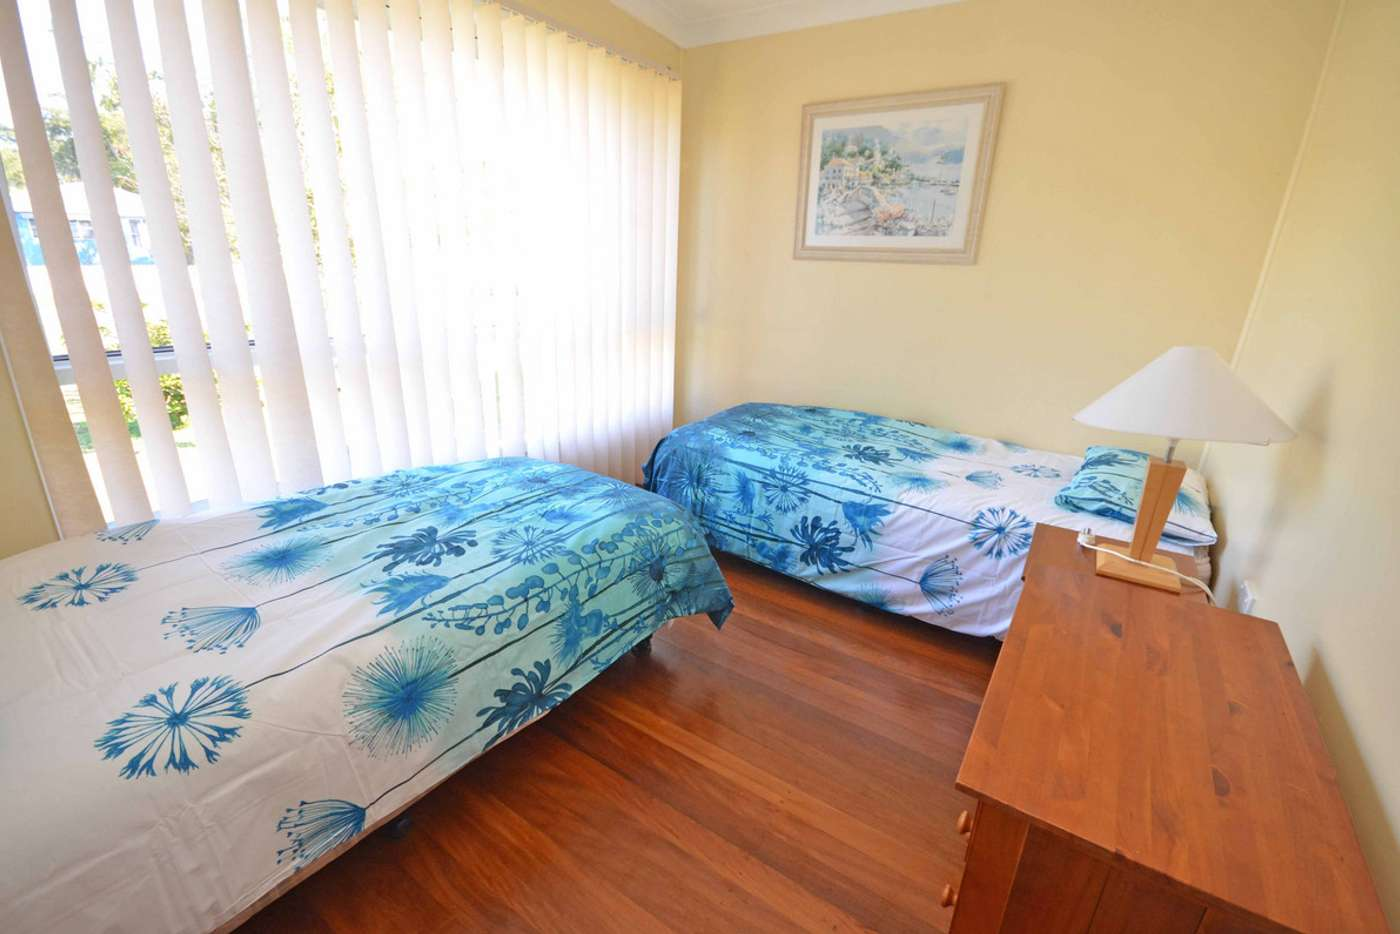 Seventh view of Homely house listing, 15 Alfred Street, North Haven NSW 2443